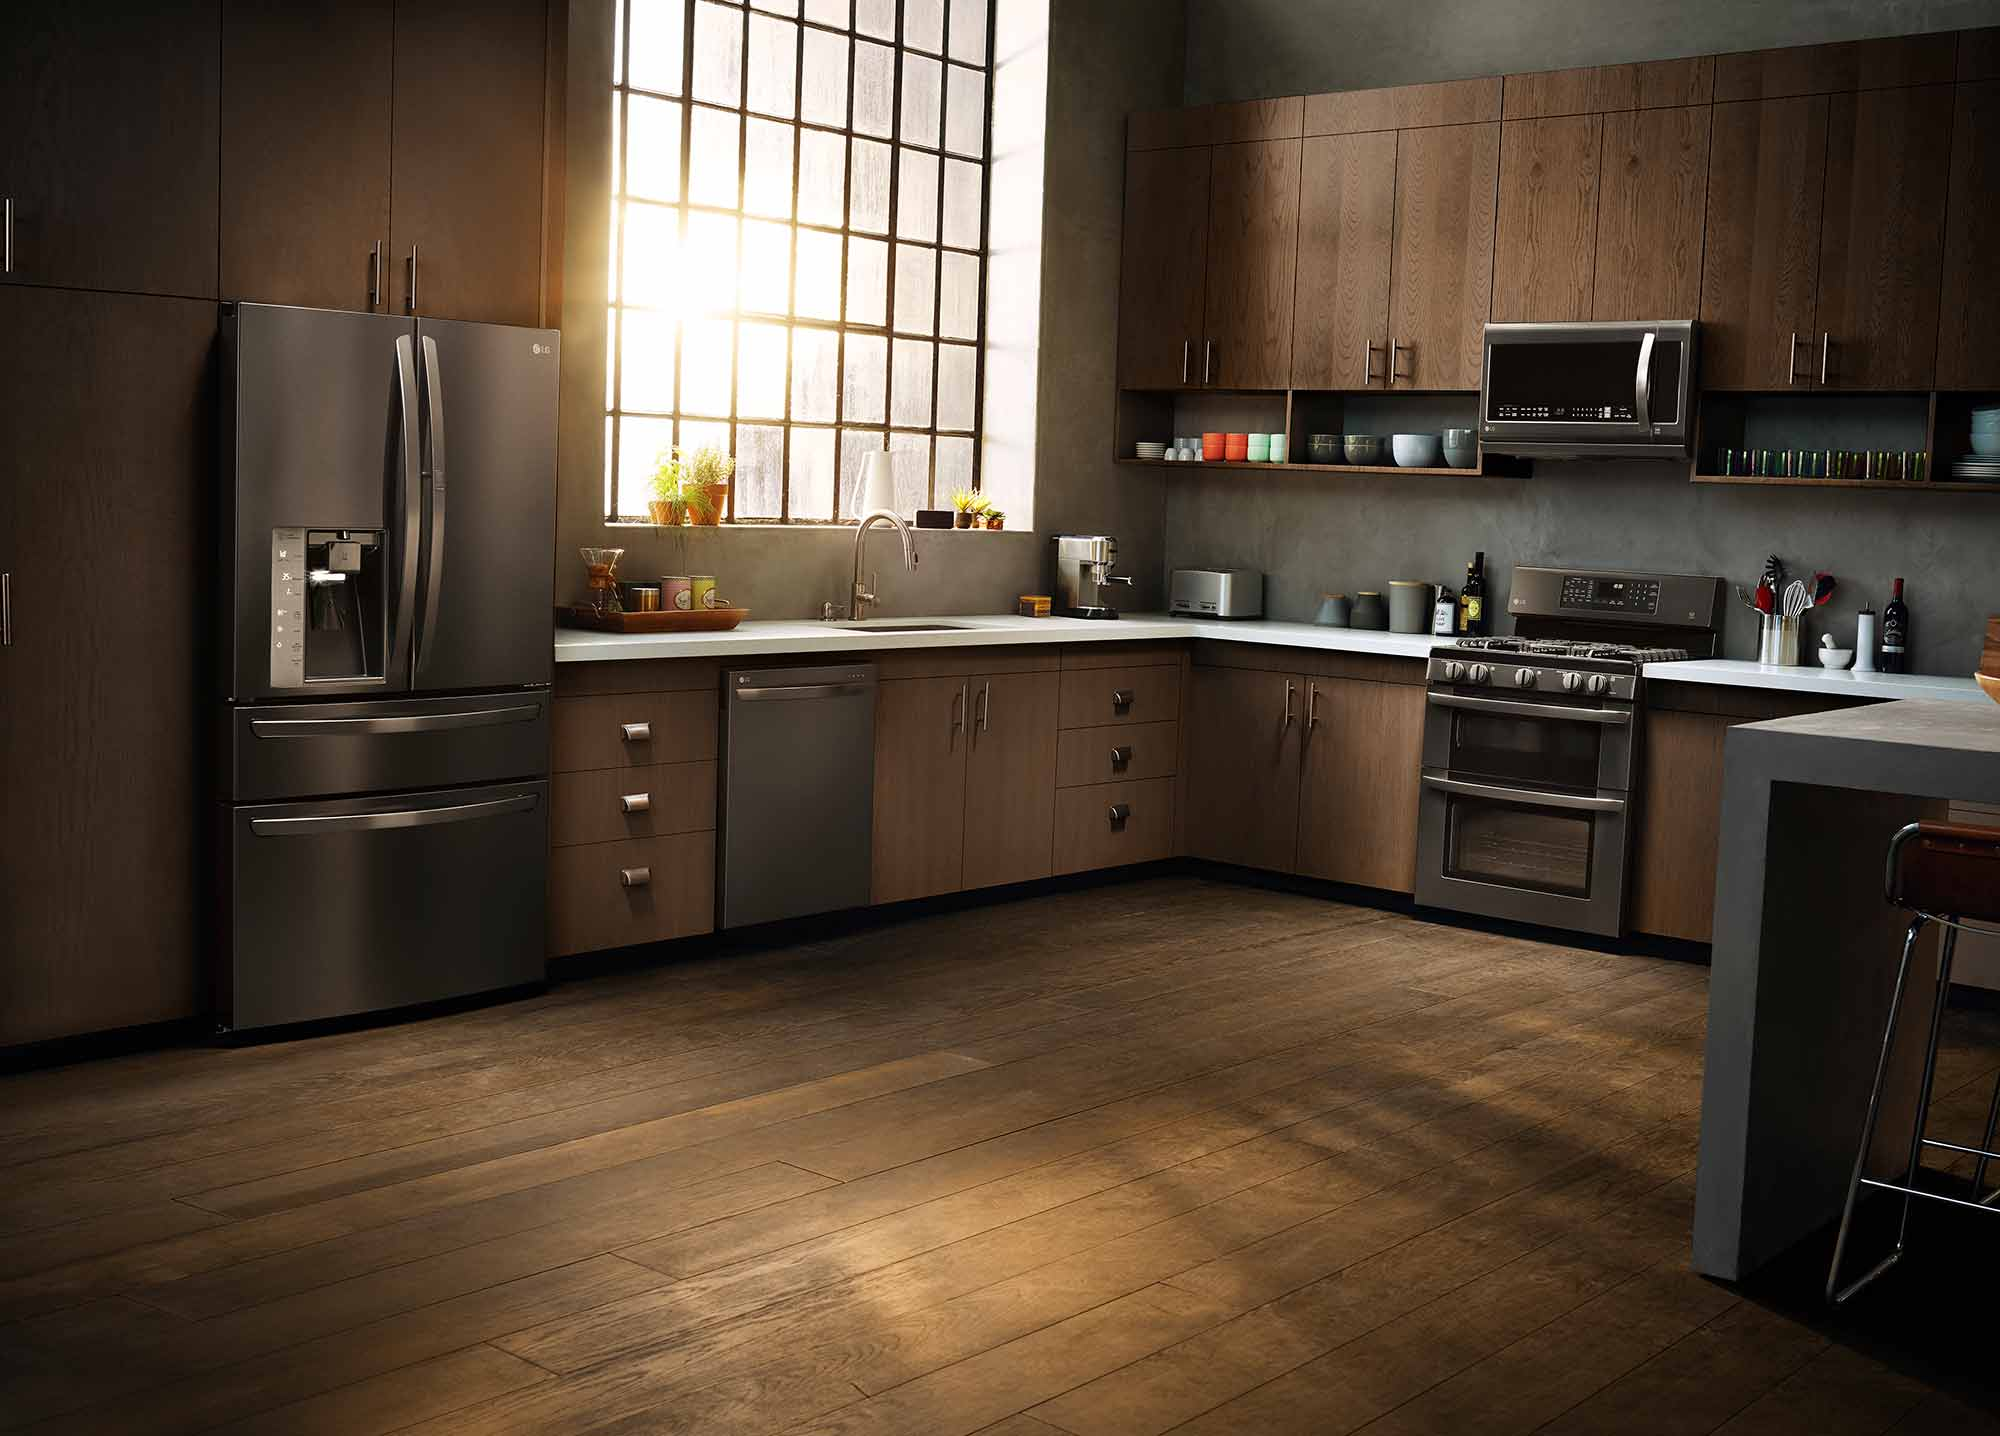 black kitchen appliances cabinet glass doors in the is new sponsored are a great alternative to stainless steel especially dark colored kitchens where you can achieve custom built look without